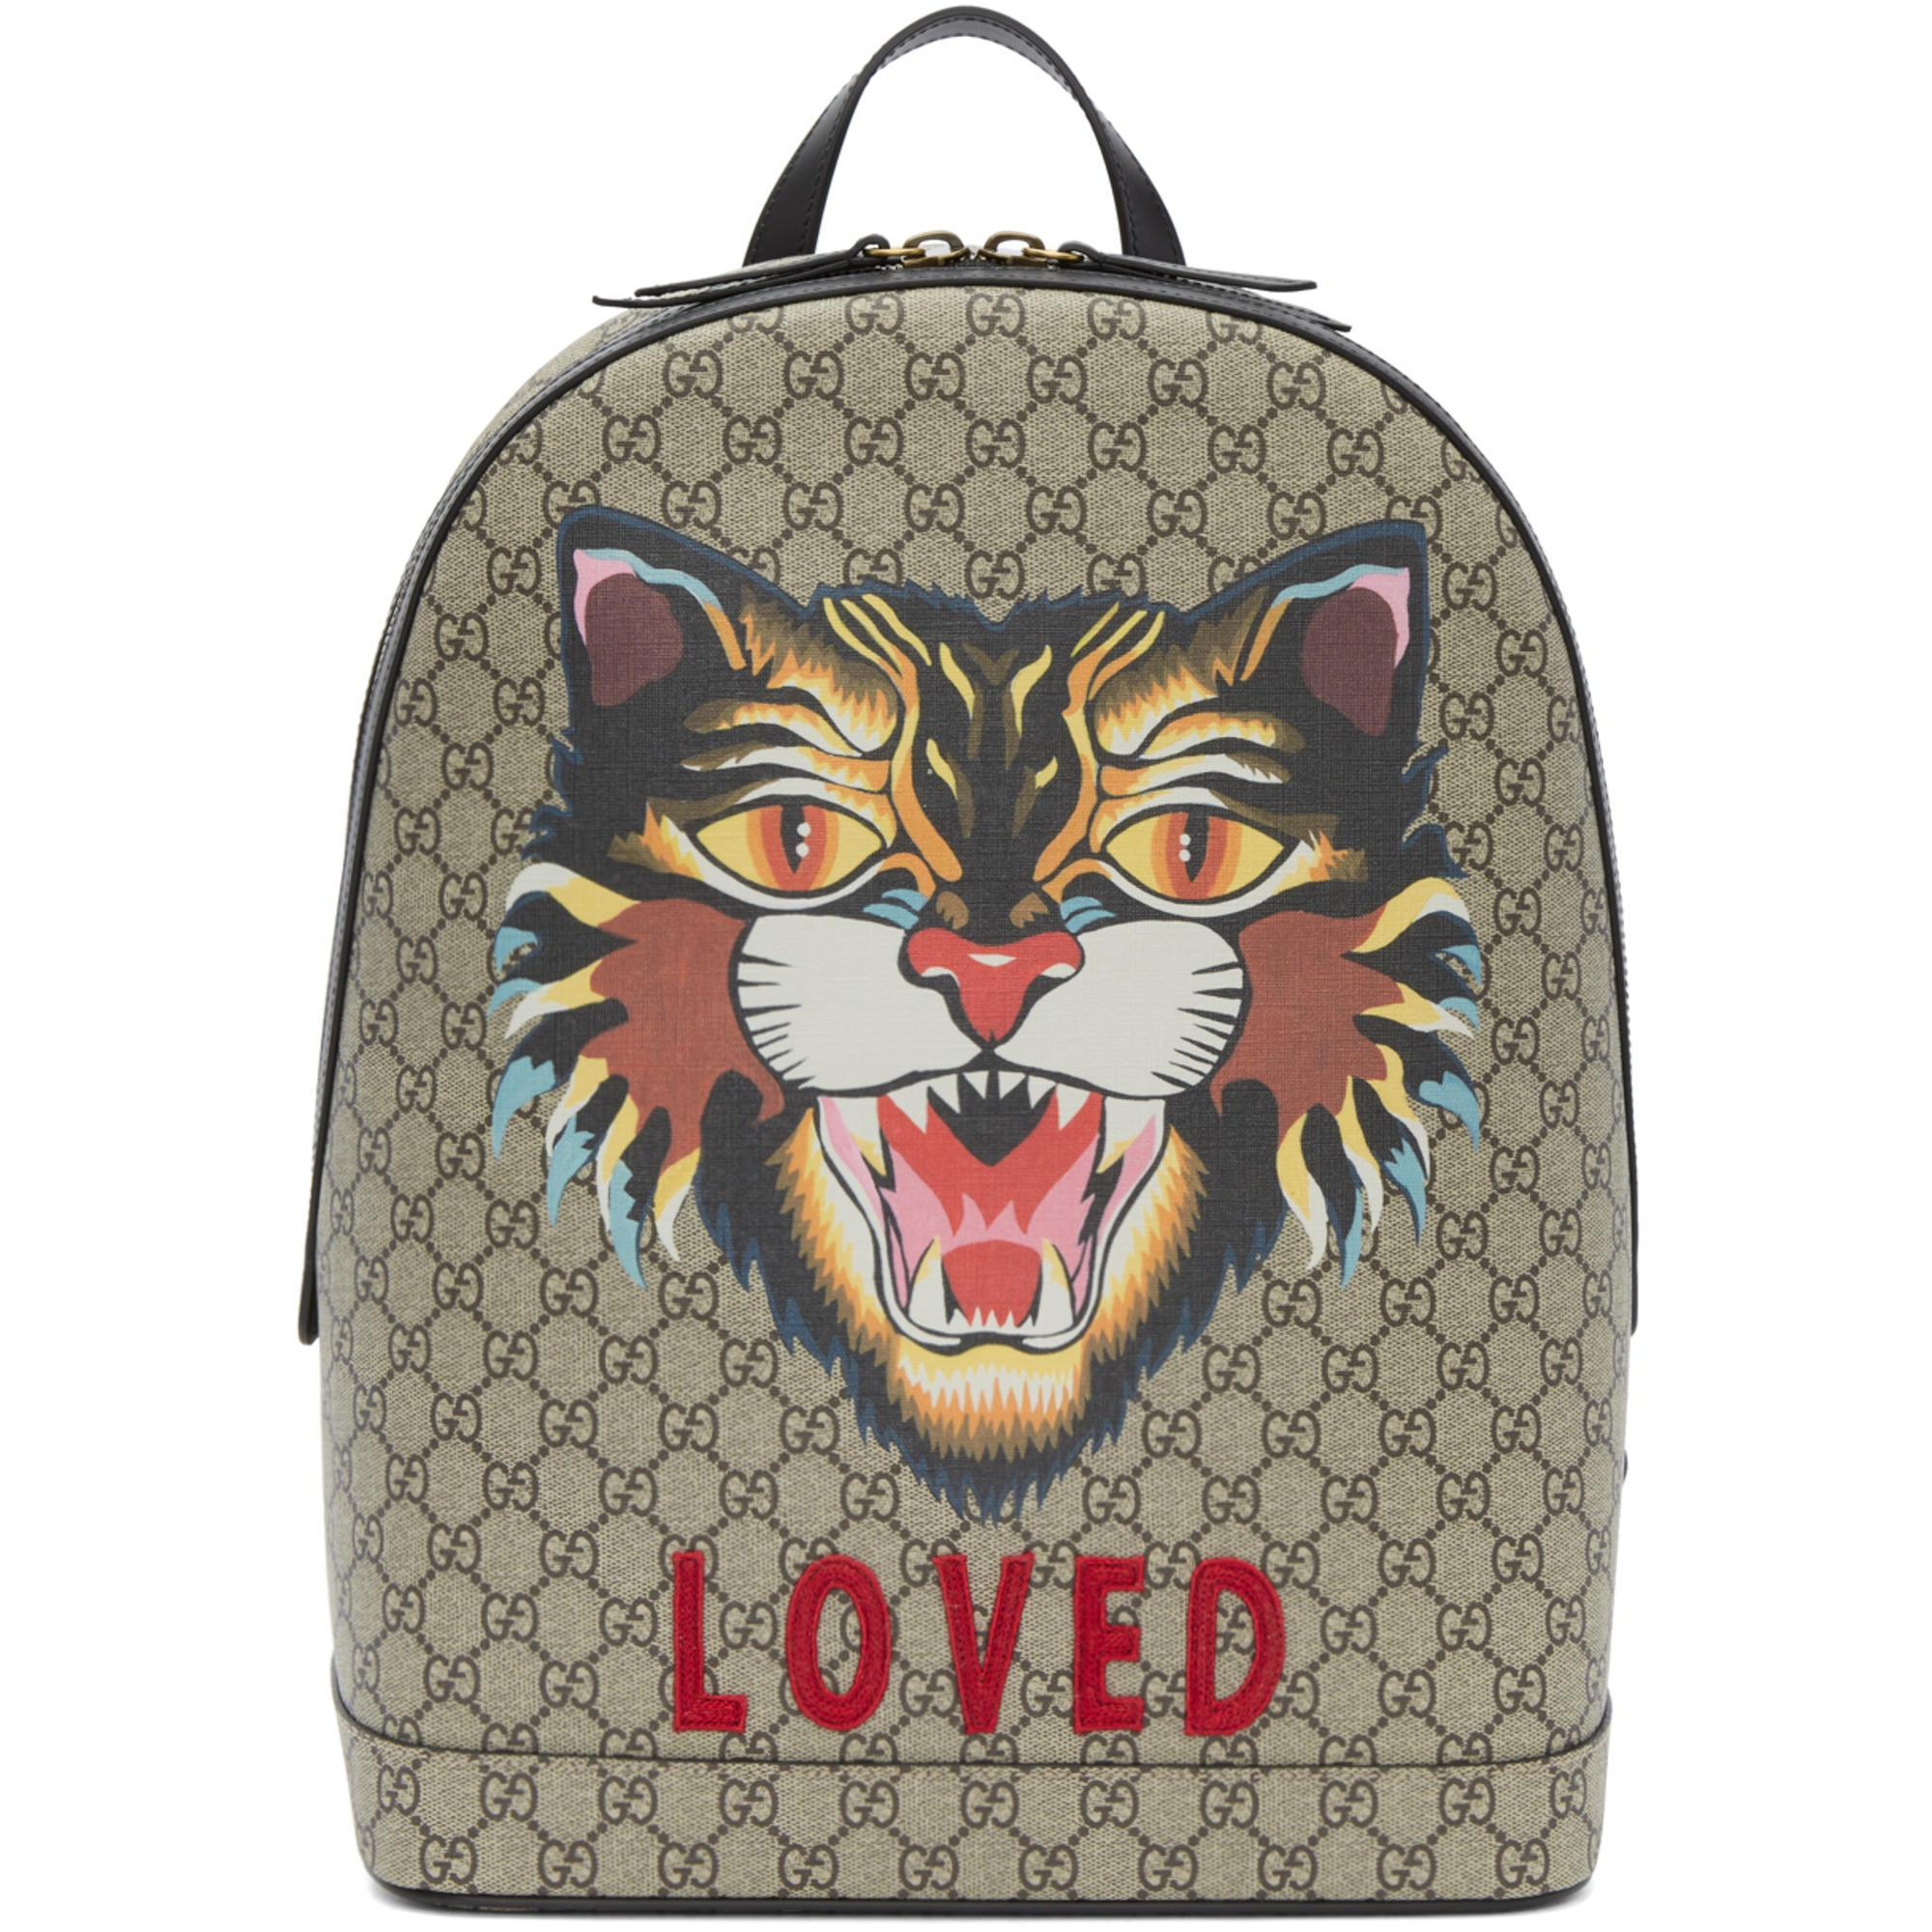 790c0d469e3 Gucci Beige Gg Supreme  loved  Angry Cat Backpack in Natural for Men ...